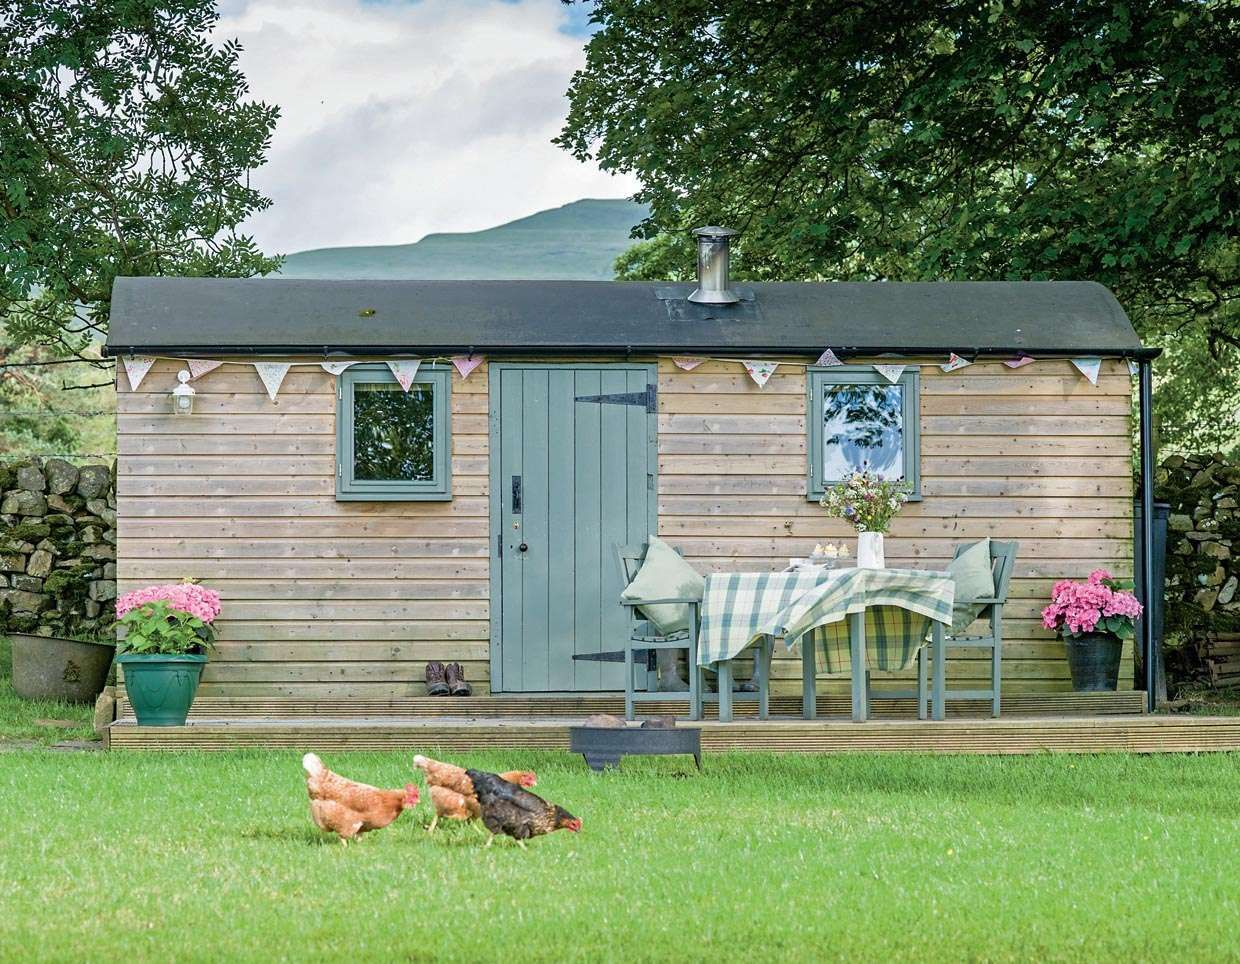 Converting sheds into livable space miniature homes and spaces - Small Space Living In The Uk Converting A Railway Carriage Into A Country Retreat